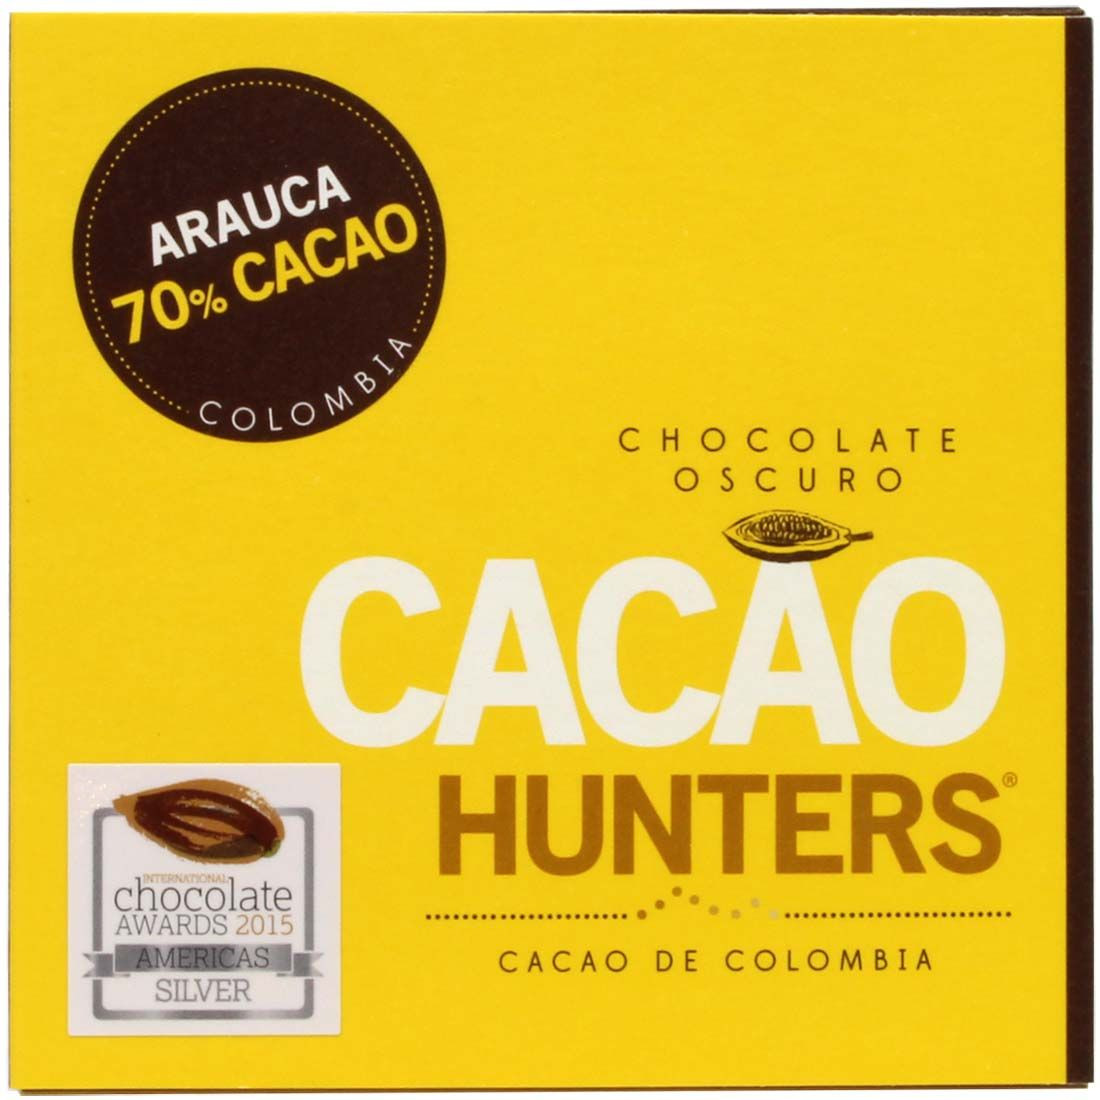 Cacao Hunters Arauca 70% Colombia - Bar of Chocolate, Columbia, Colombian chocolate - Chocolats-De-Luxe